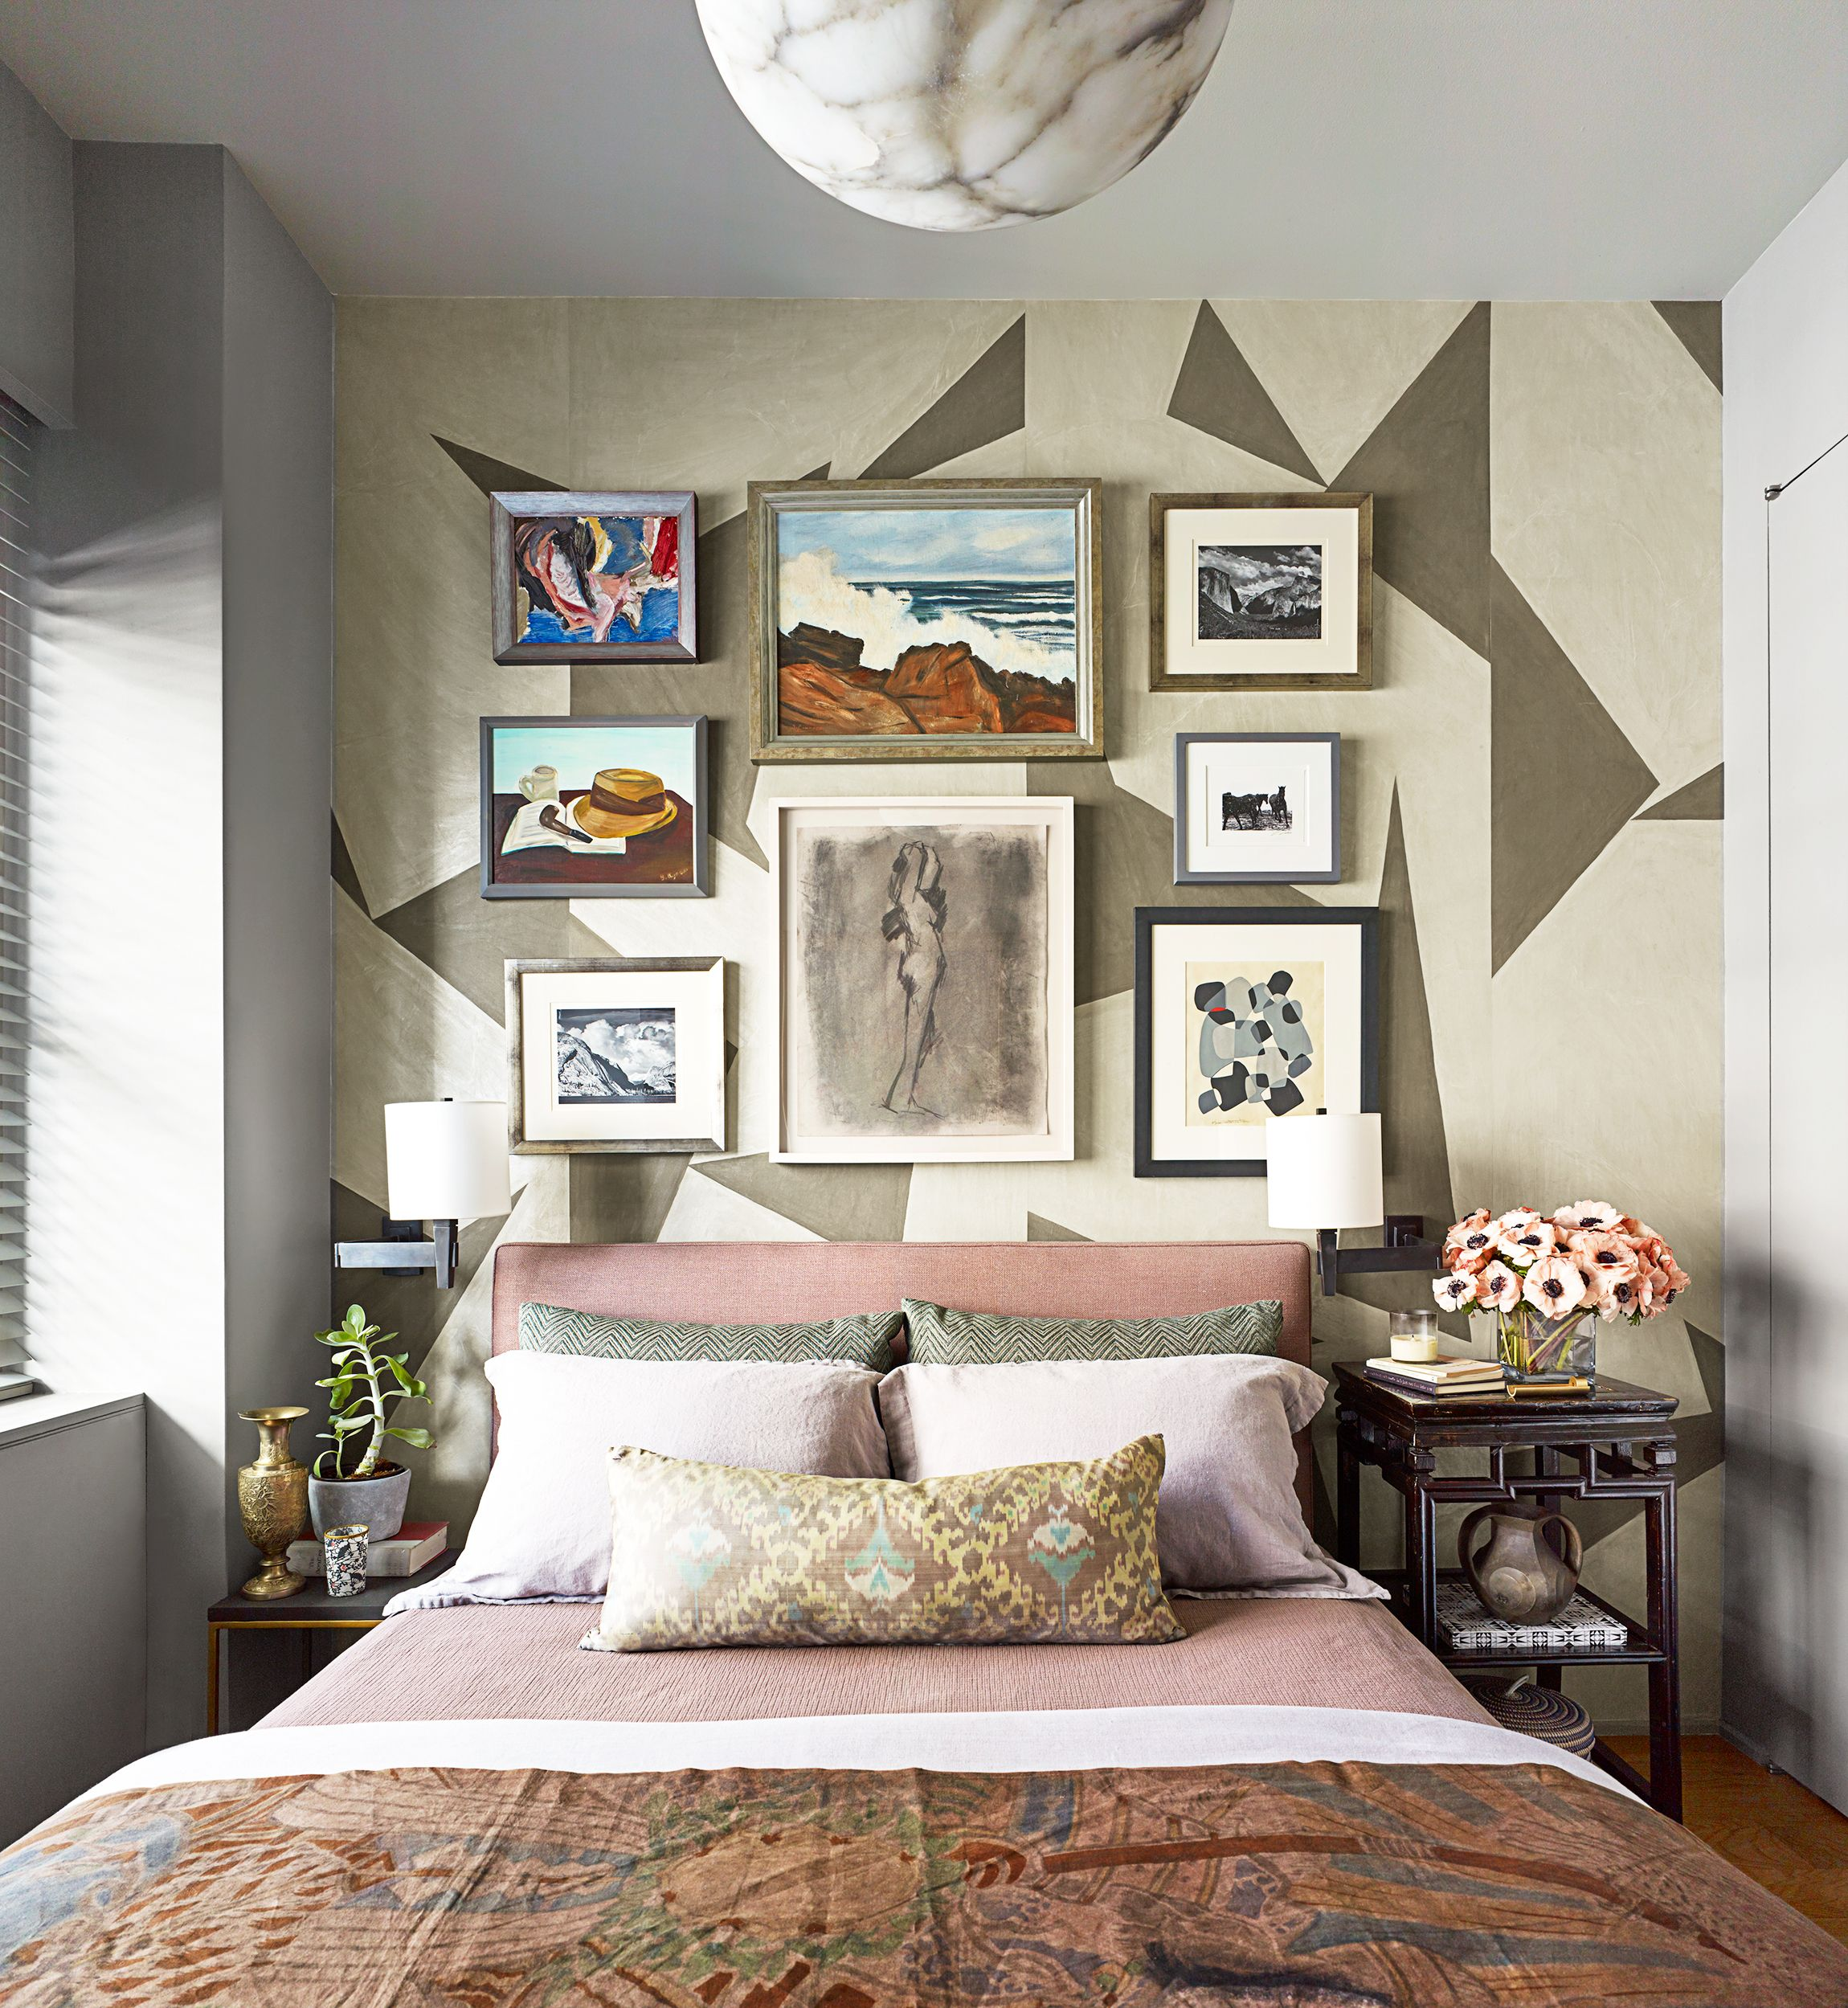 25 Small Bedroom Design Ideas , How to Decorate a Small Bedroom